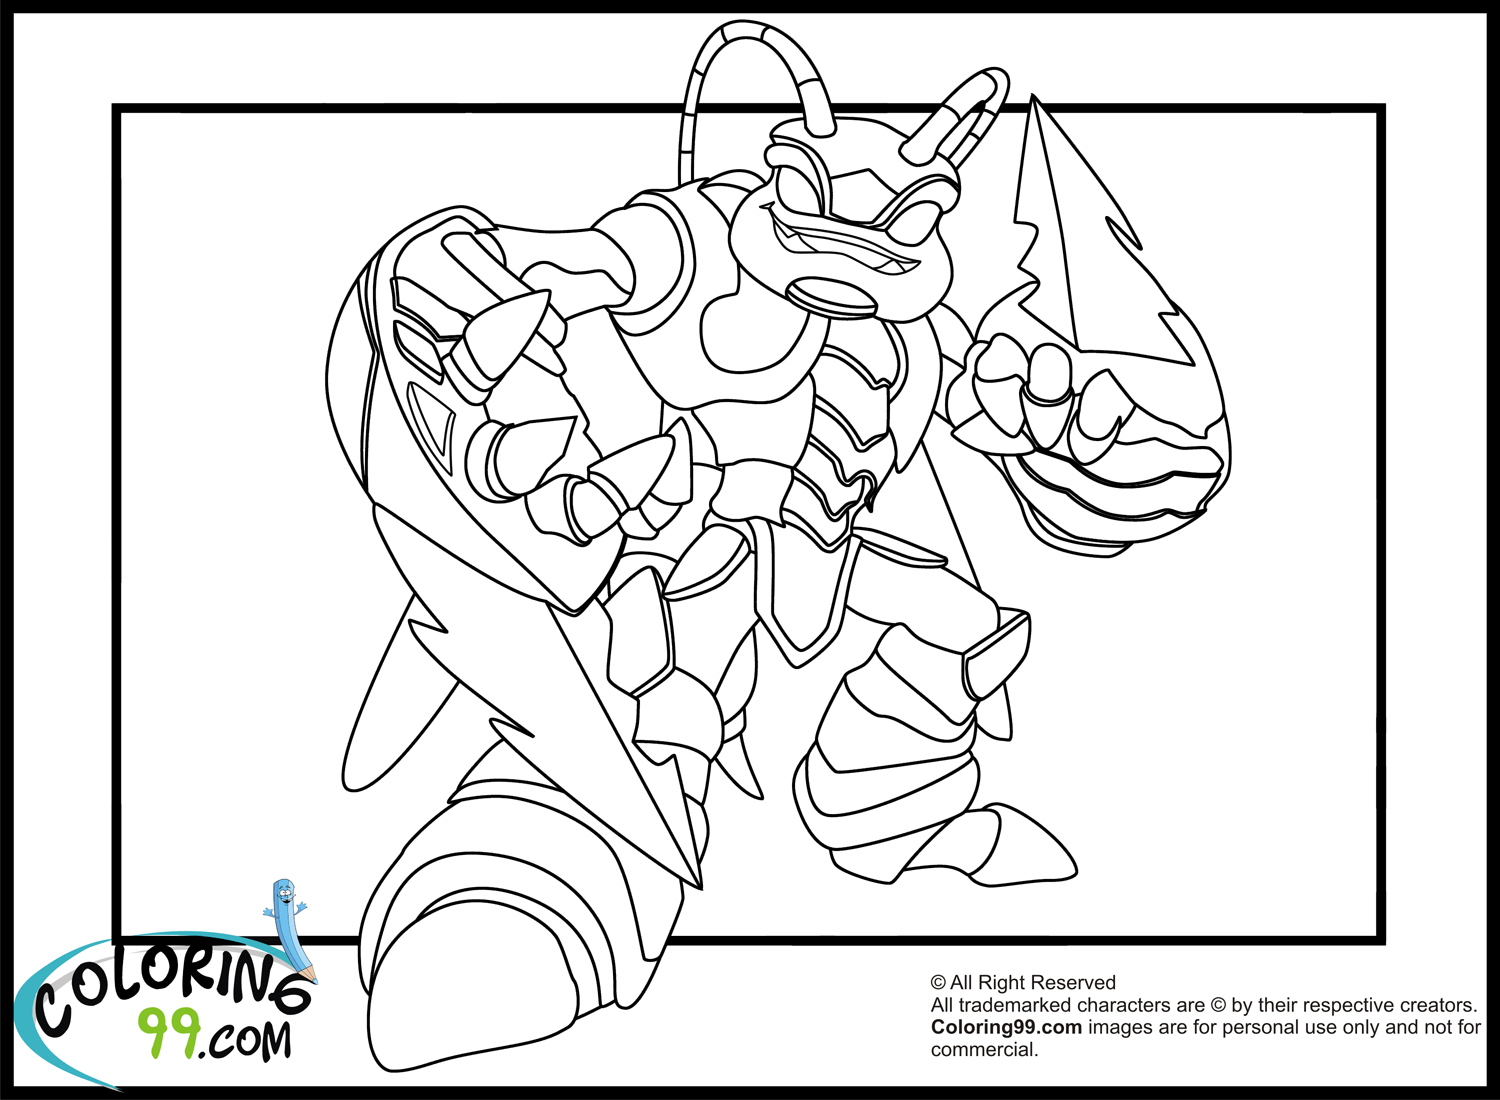 Skylanders hot head coloring pages ~ Skylanders Giants Coloring Pages | Team colors